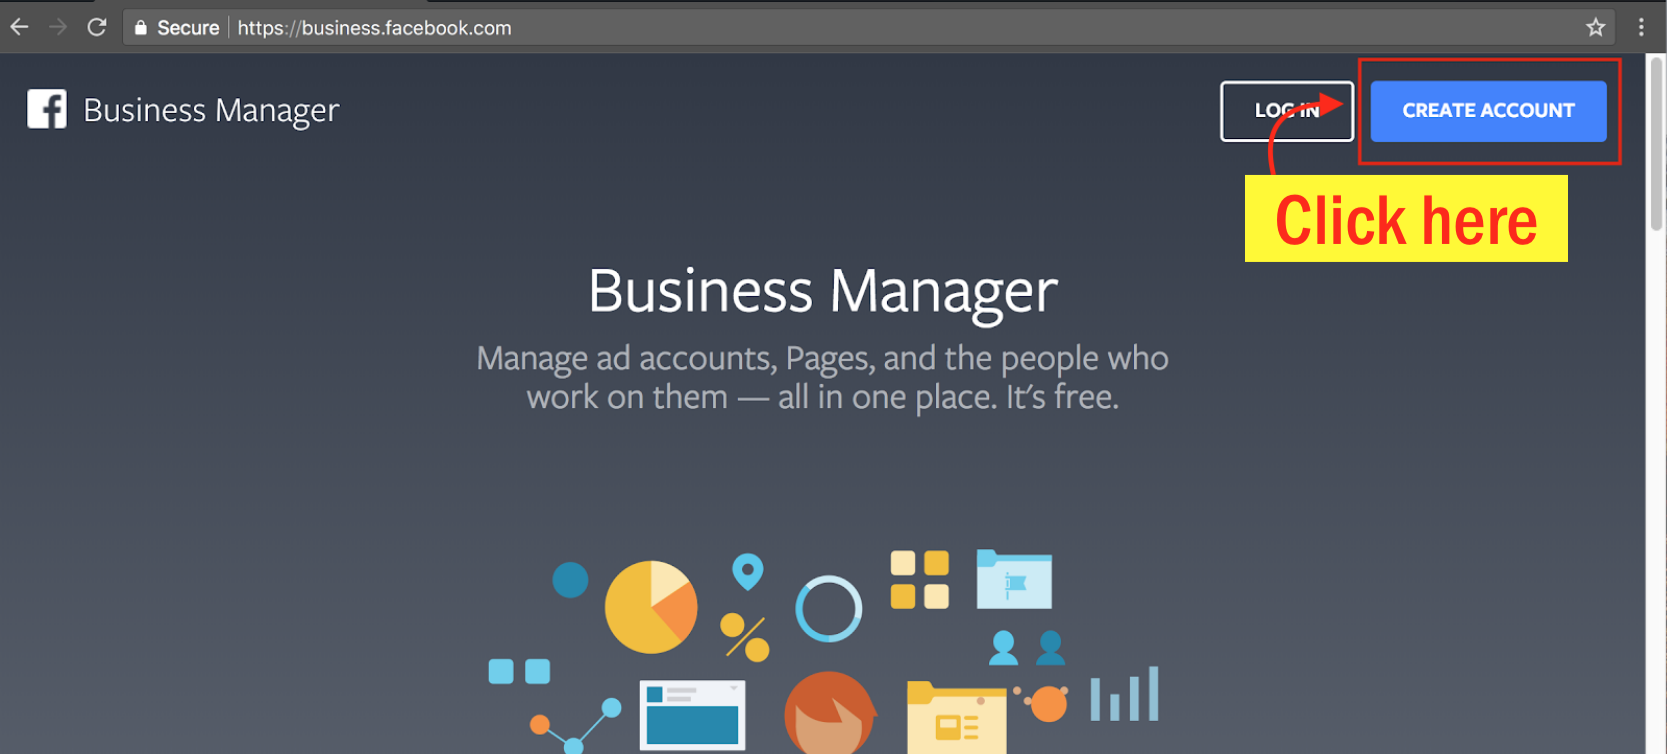 Sign Up for Facebook Business Manager - Step 3 Screenshot